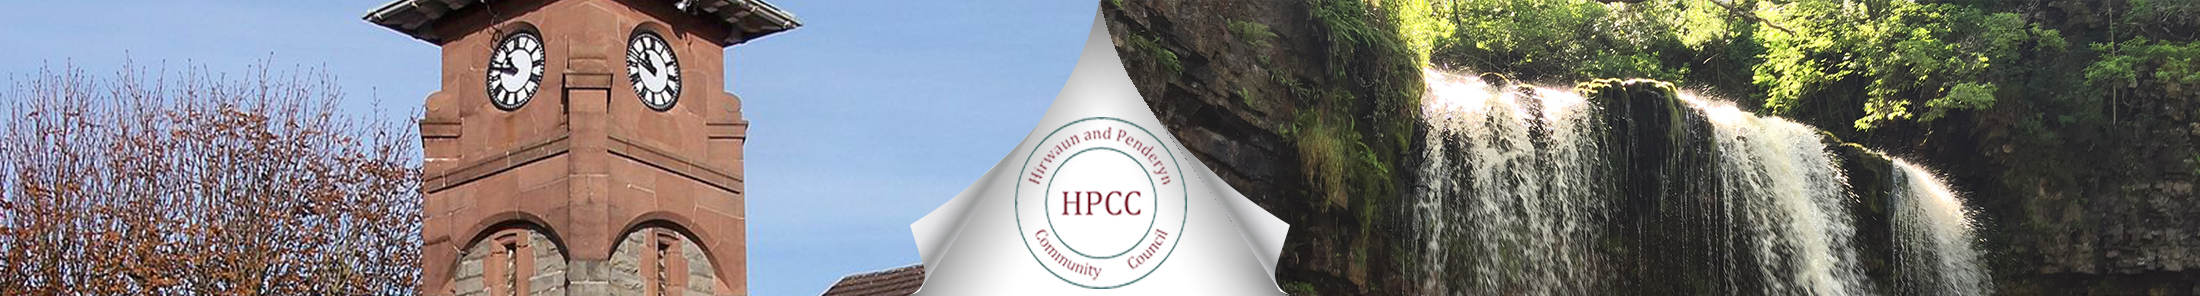 Header Image for Hirwaun and Penderyn Community Council